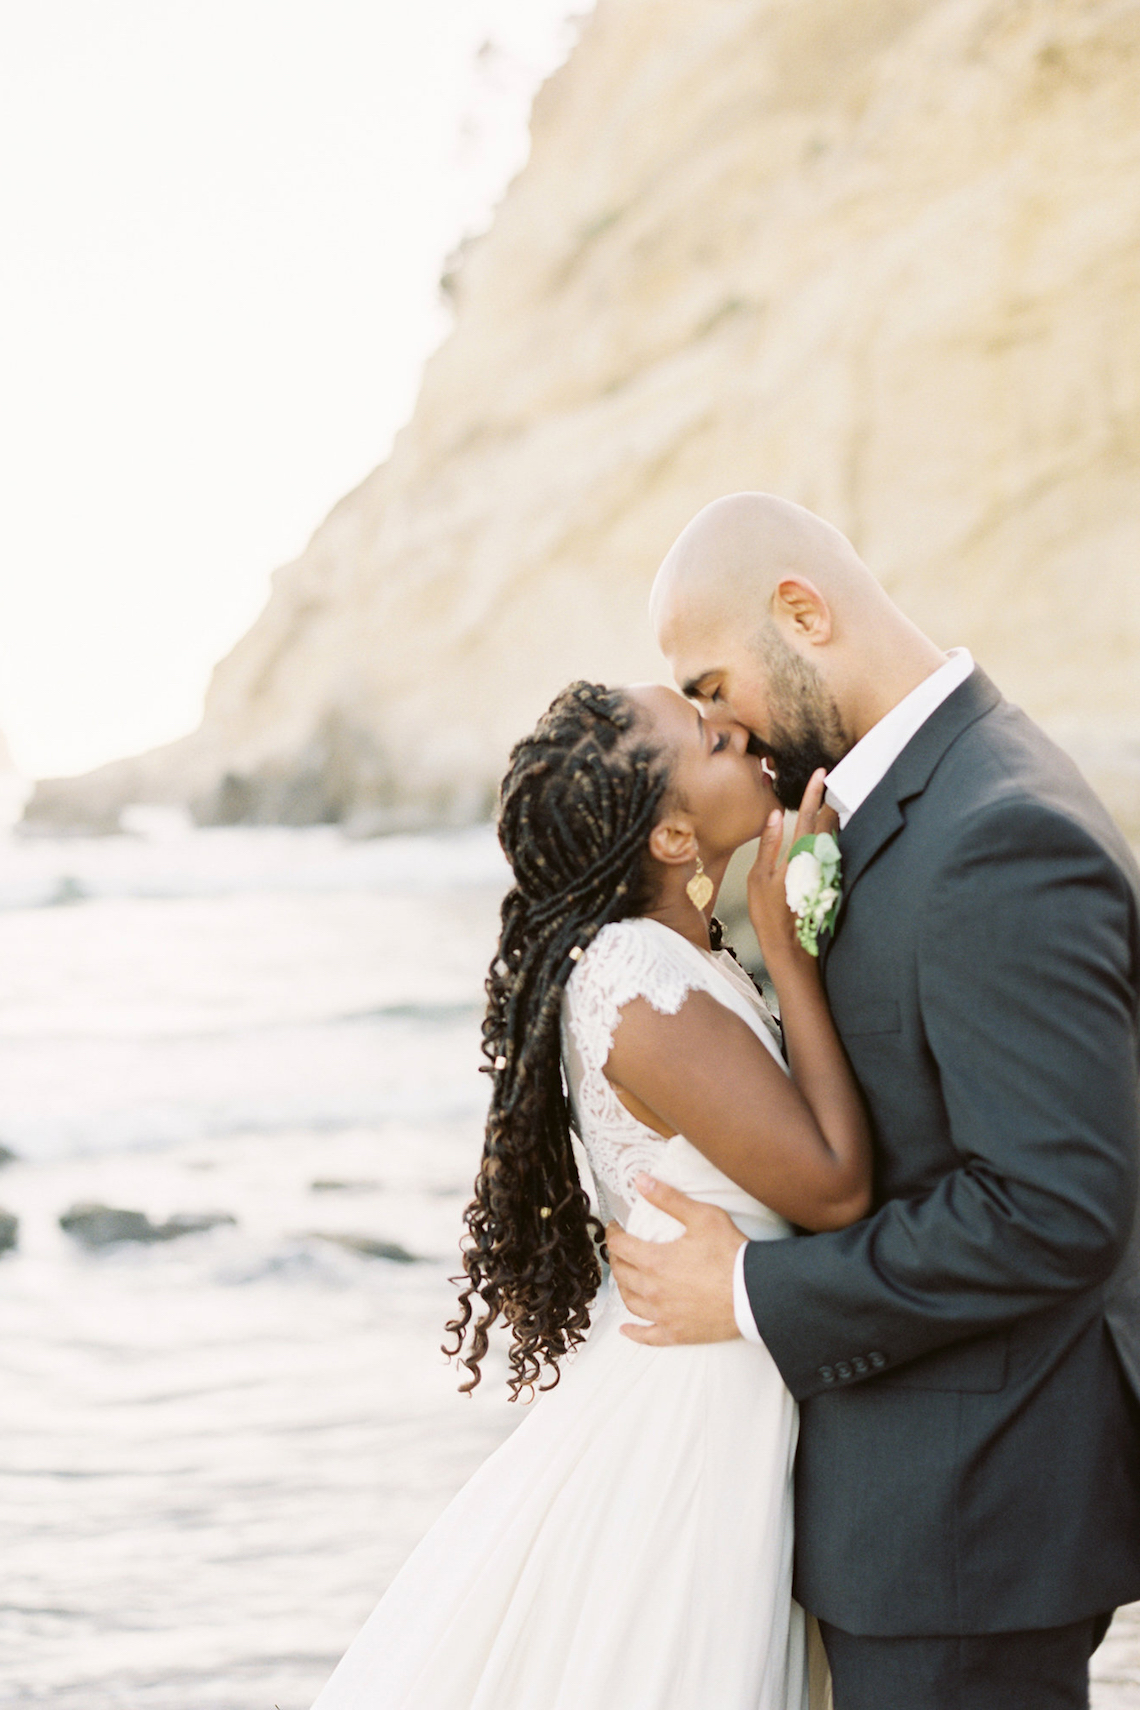 Blackberry and Pear Dreamy Beach Elopement Inspiration – Troy Meikle 8